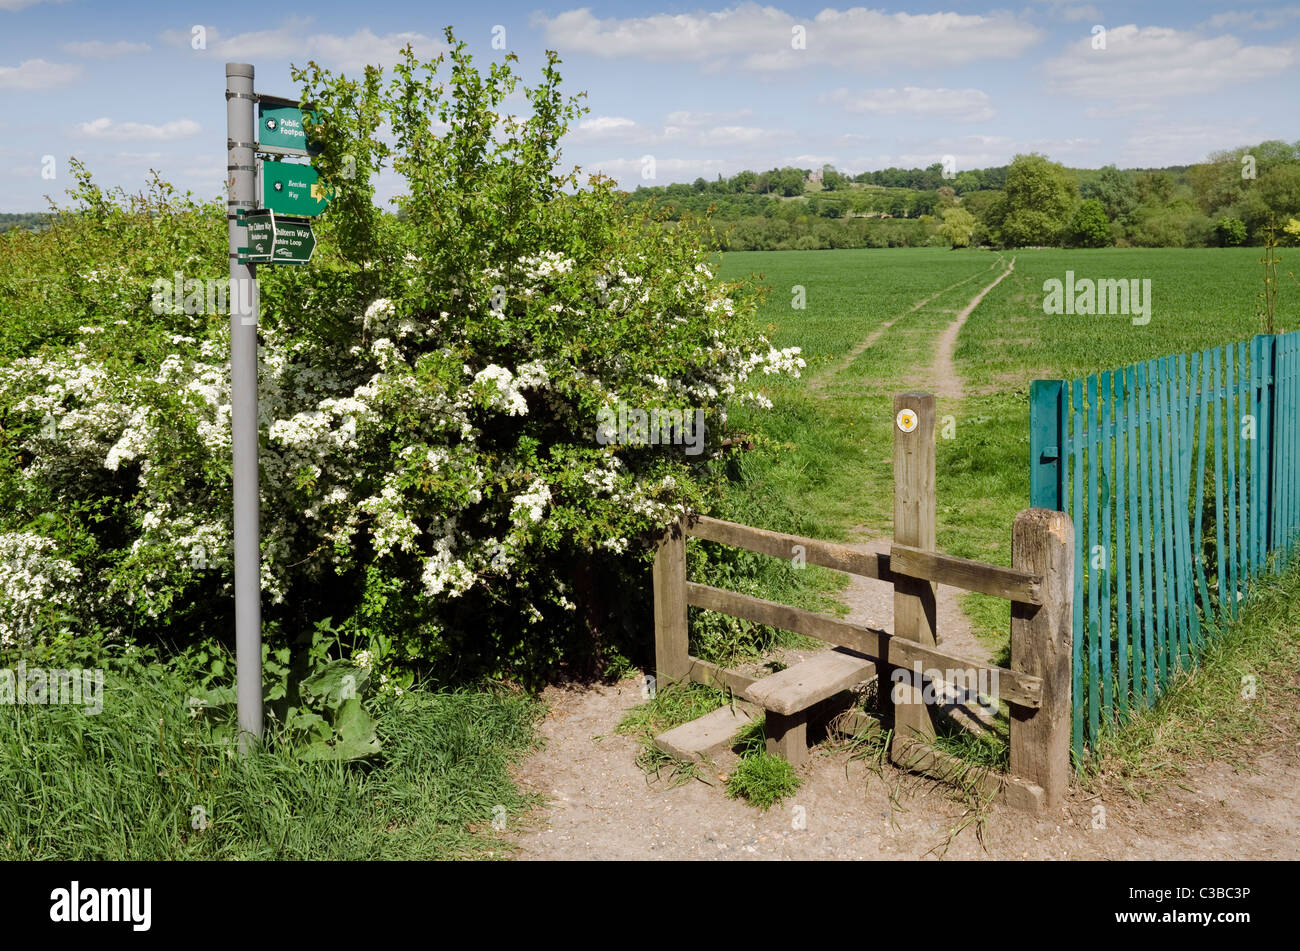 Footpath Wooden Country Stile Stock Photos Footpath Wooden Country